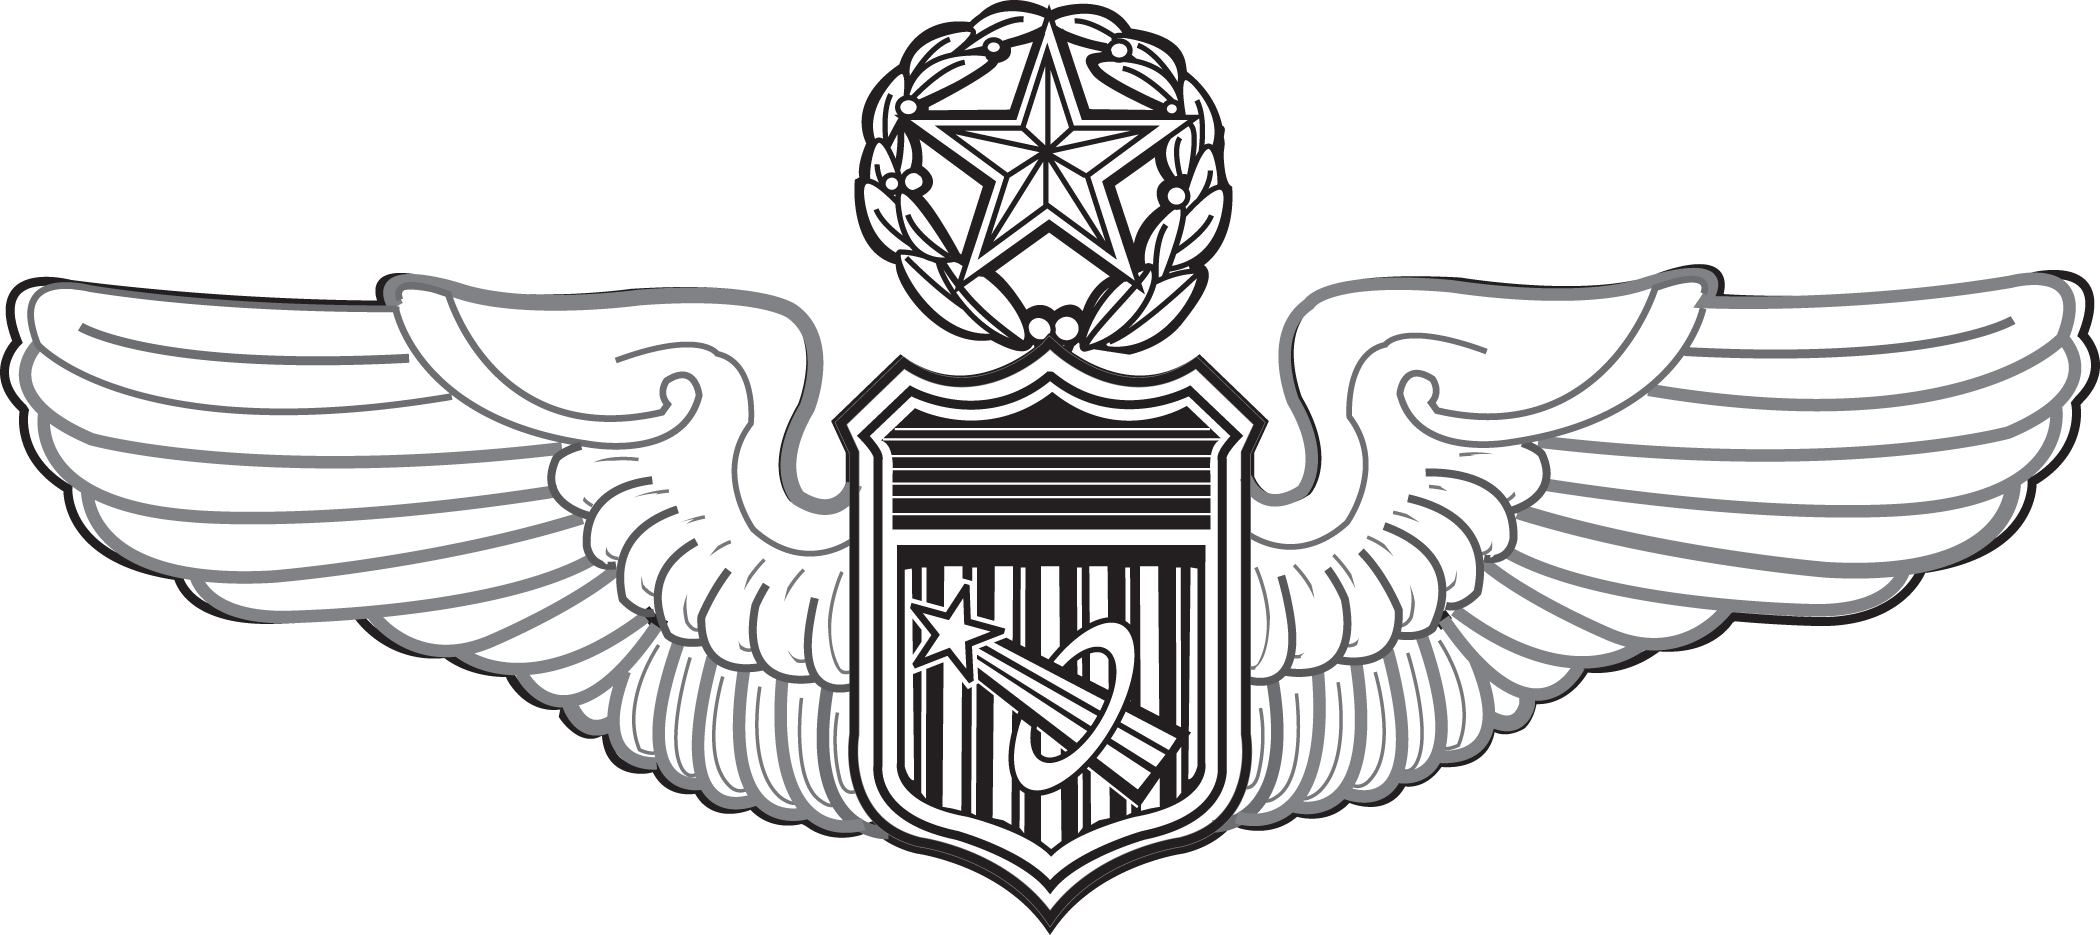 astronaut wings insignia - photo #21